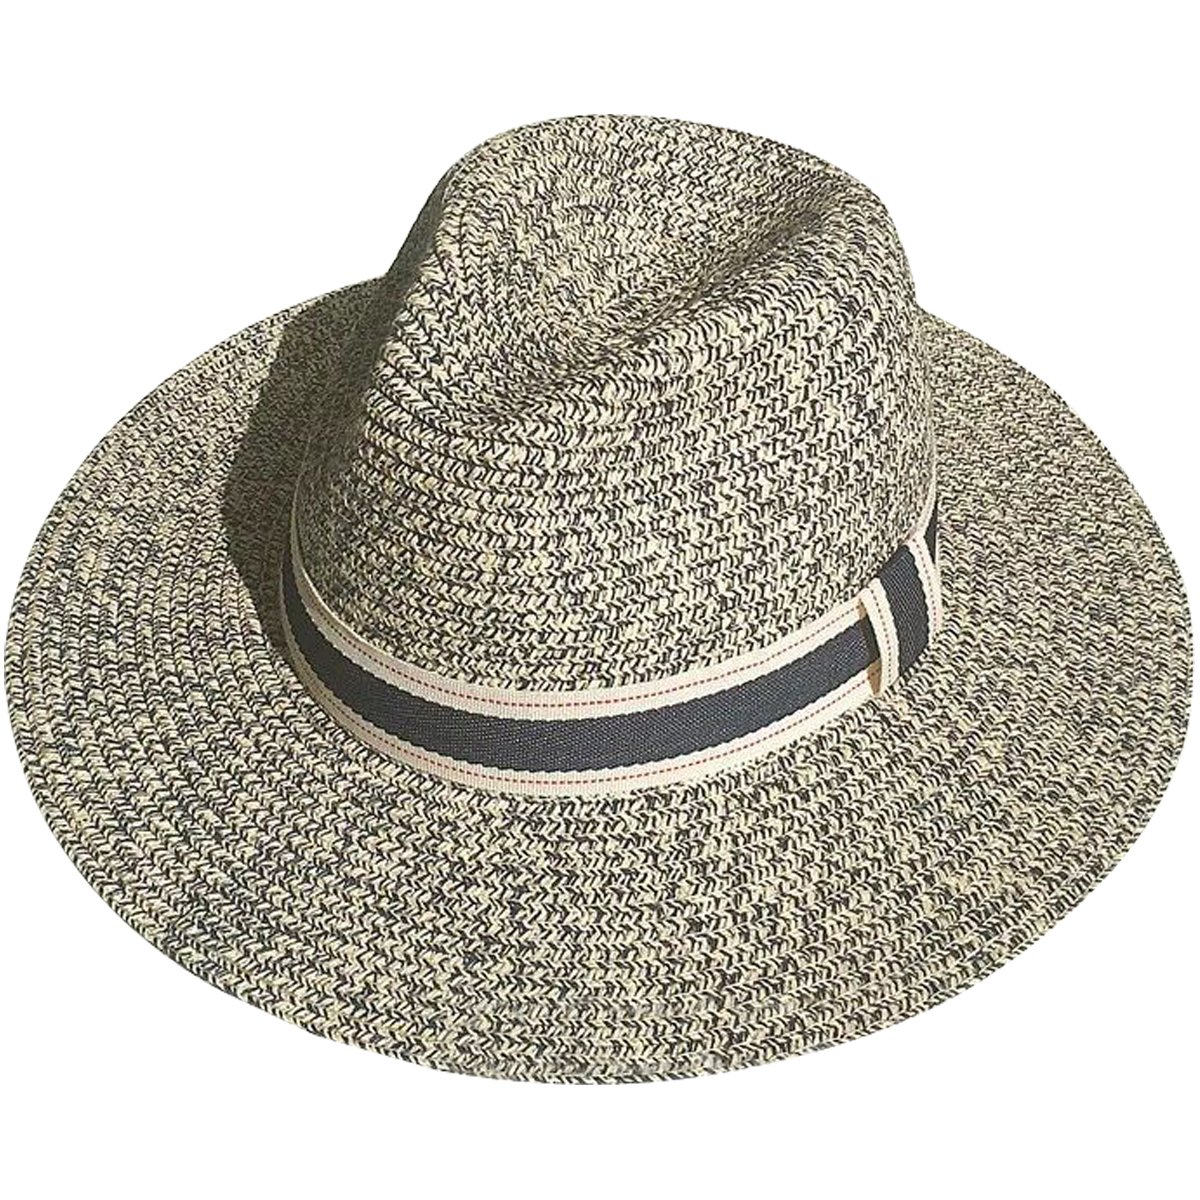 6936bb7e2e438a JOYEBUY Women Wide Brim Contrast Color Fedora Beach Sun Hat Straw Panama  Foldable Roll up Hat (Navy, One Size) at Amazon Women's Clothing store: